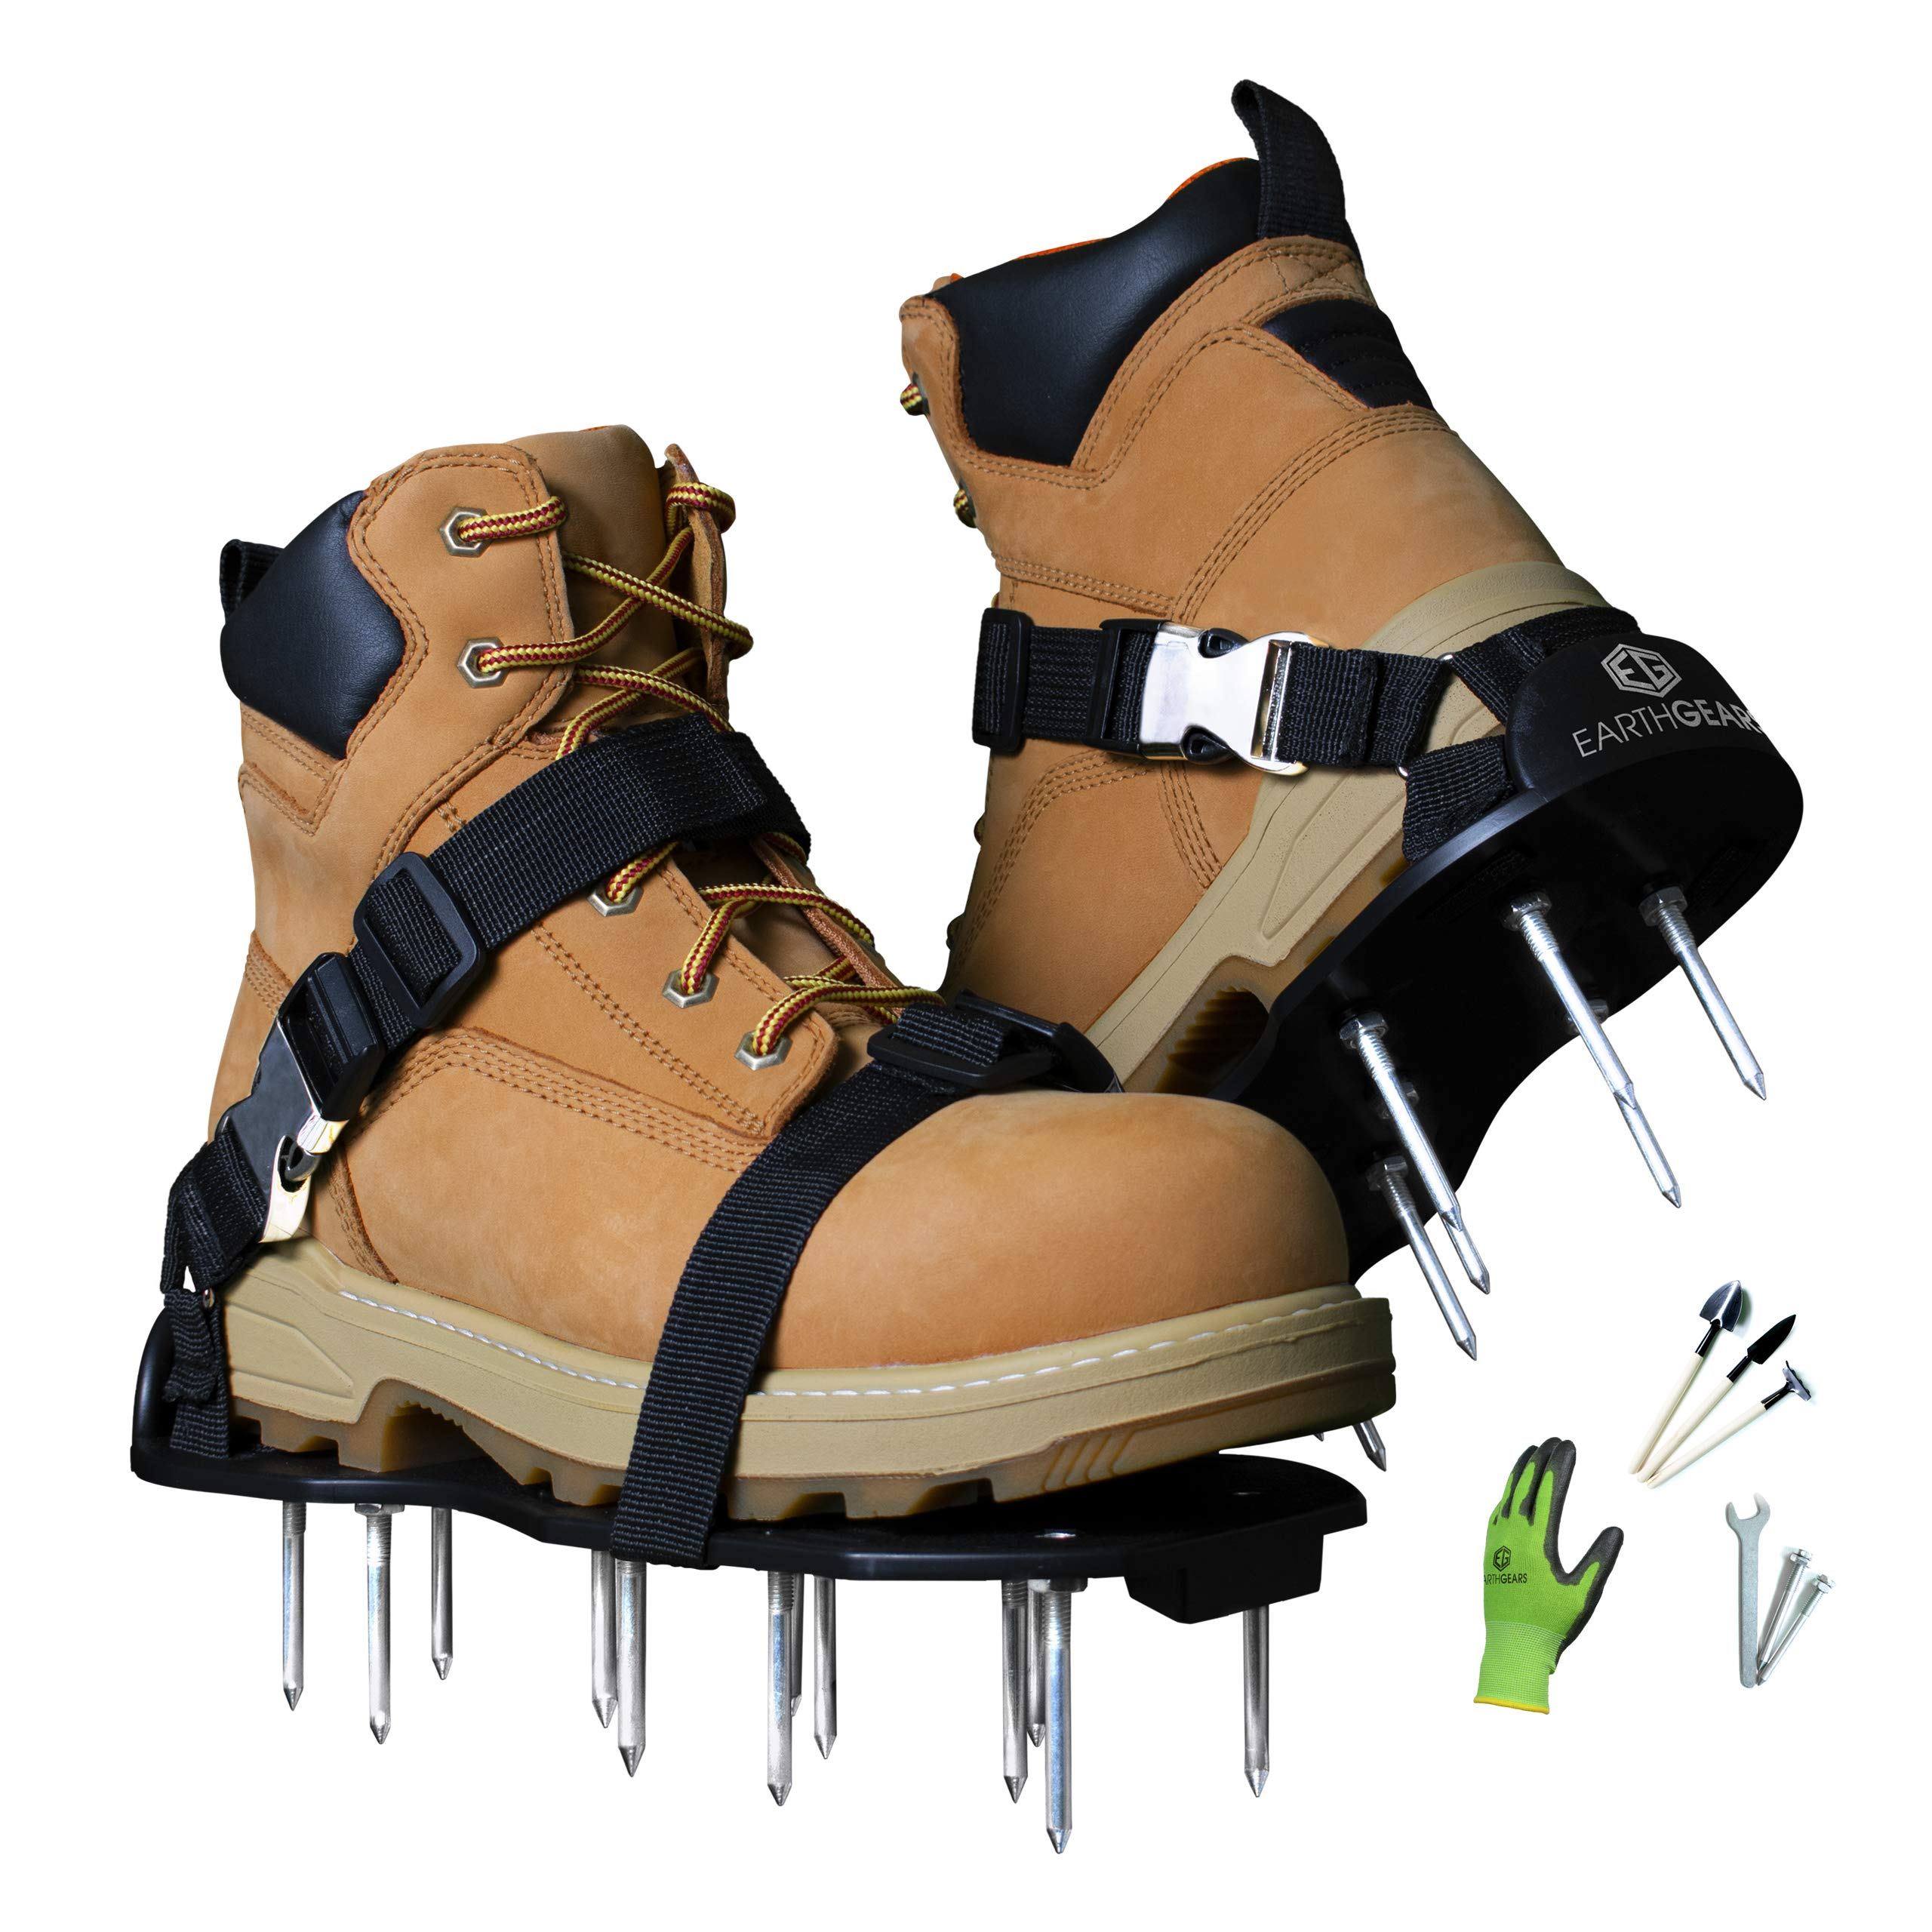 Earthgears [2019 Upgraded Model] Lawn Aerator Shoes Fully Assembled E-Z FIT Strap System, Heel Support, 2.4'' Spikes.2'' Hardened Soles Bonus- 3 Shovels, 1 Pair of Bamboo Gloves, Extra Spikes by Earthgears